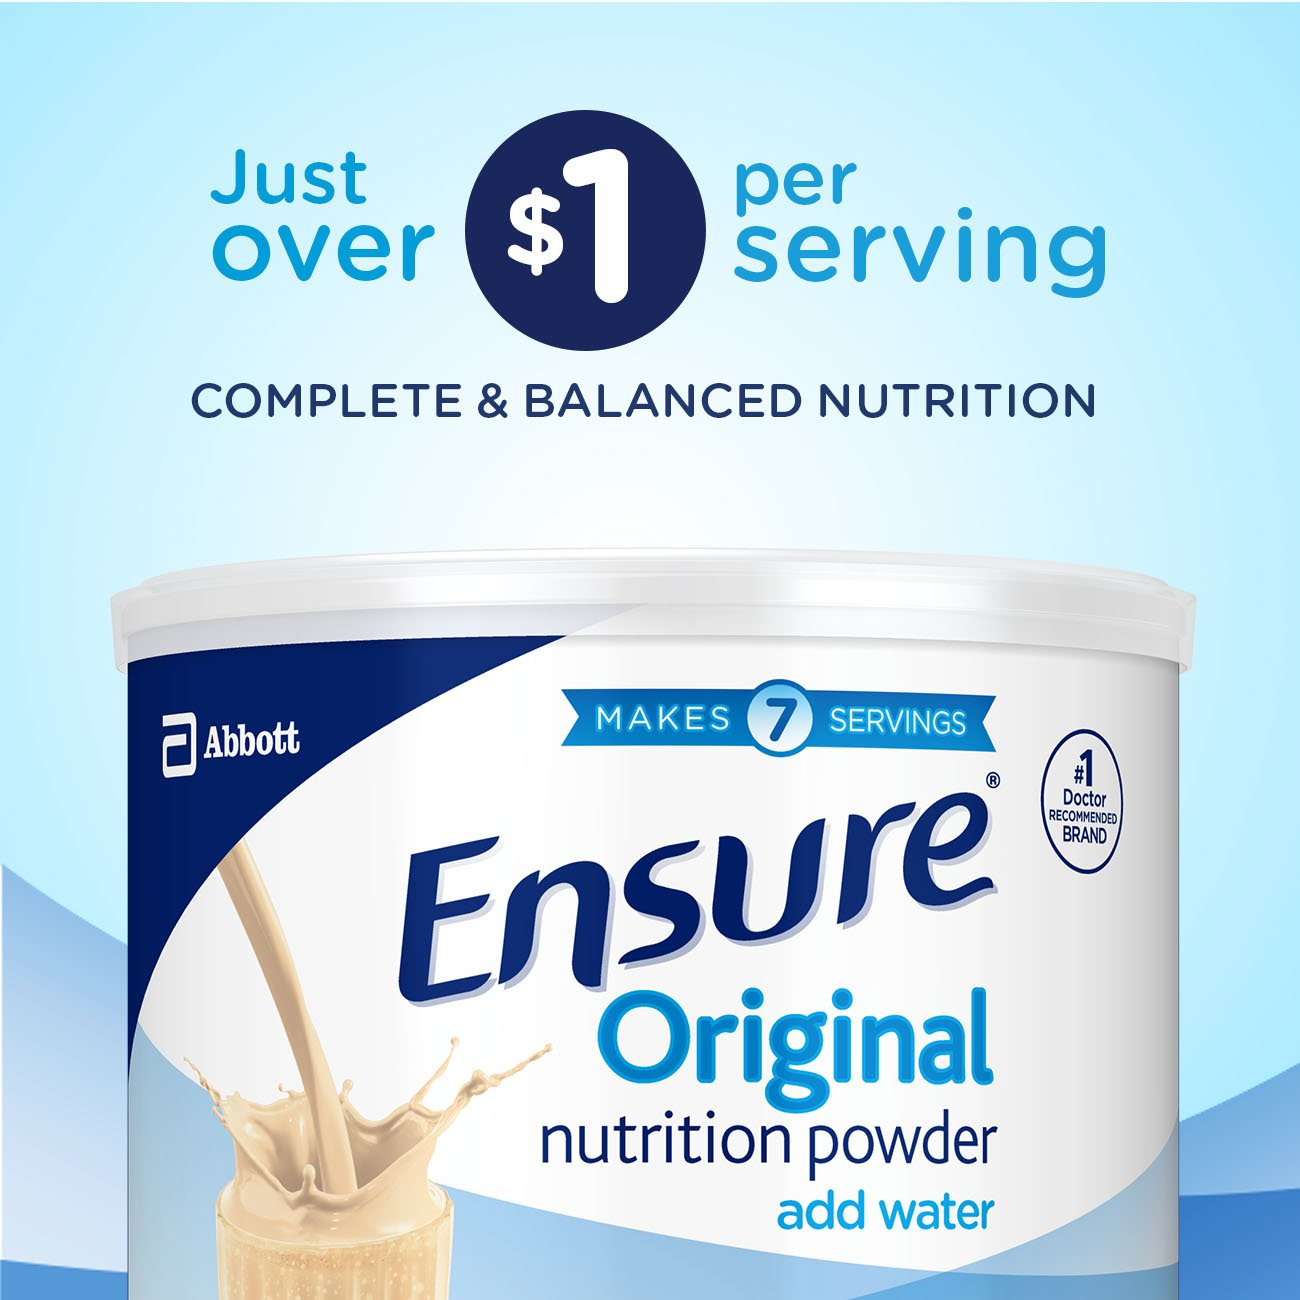 Ensure Original Nutrition Powder with 8 grams of protein, Meal Replacement, Vanilla, 6 count by Ensure (Image #8)